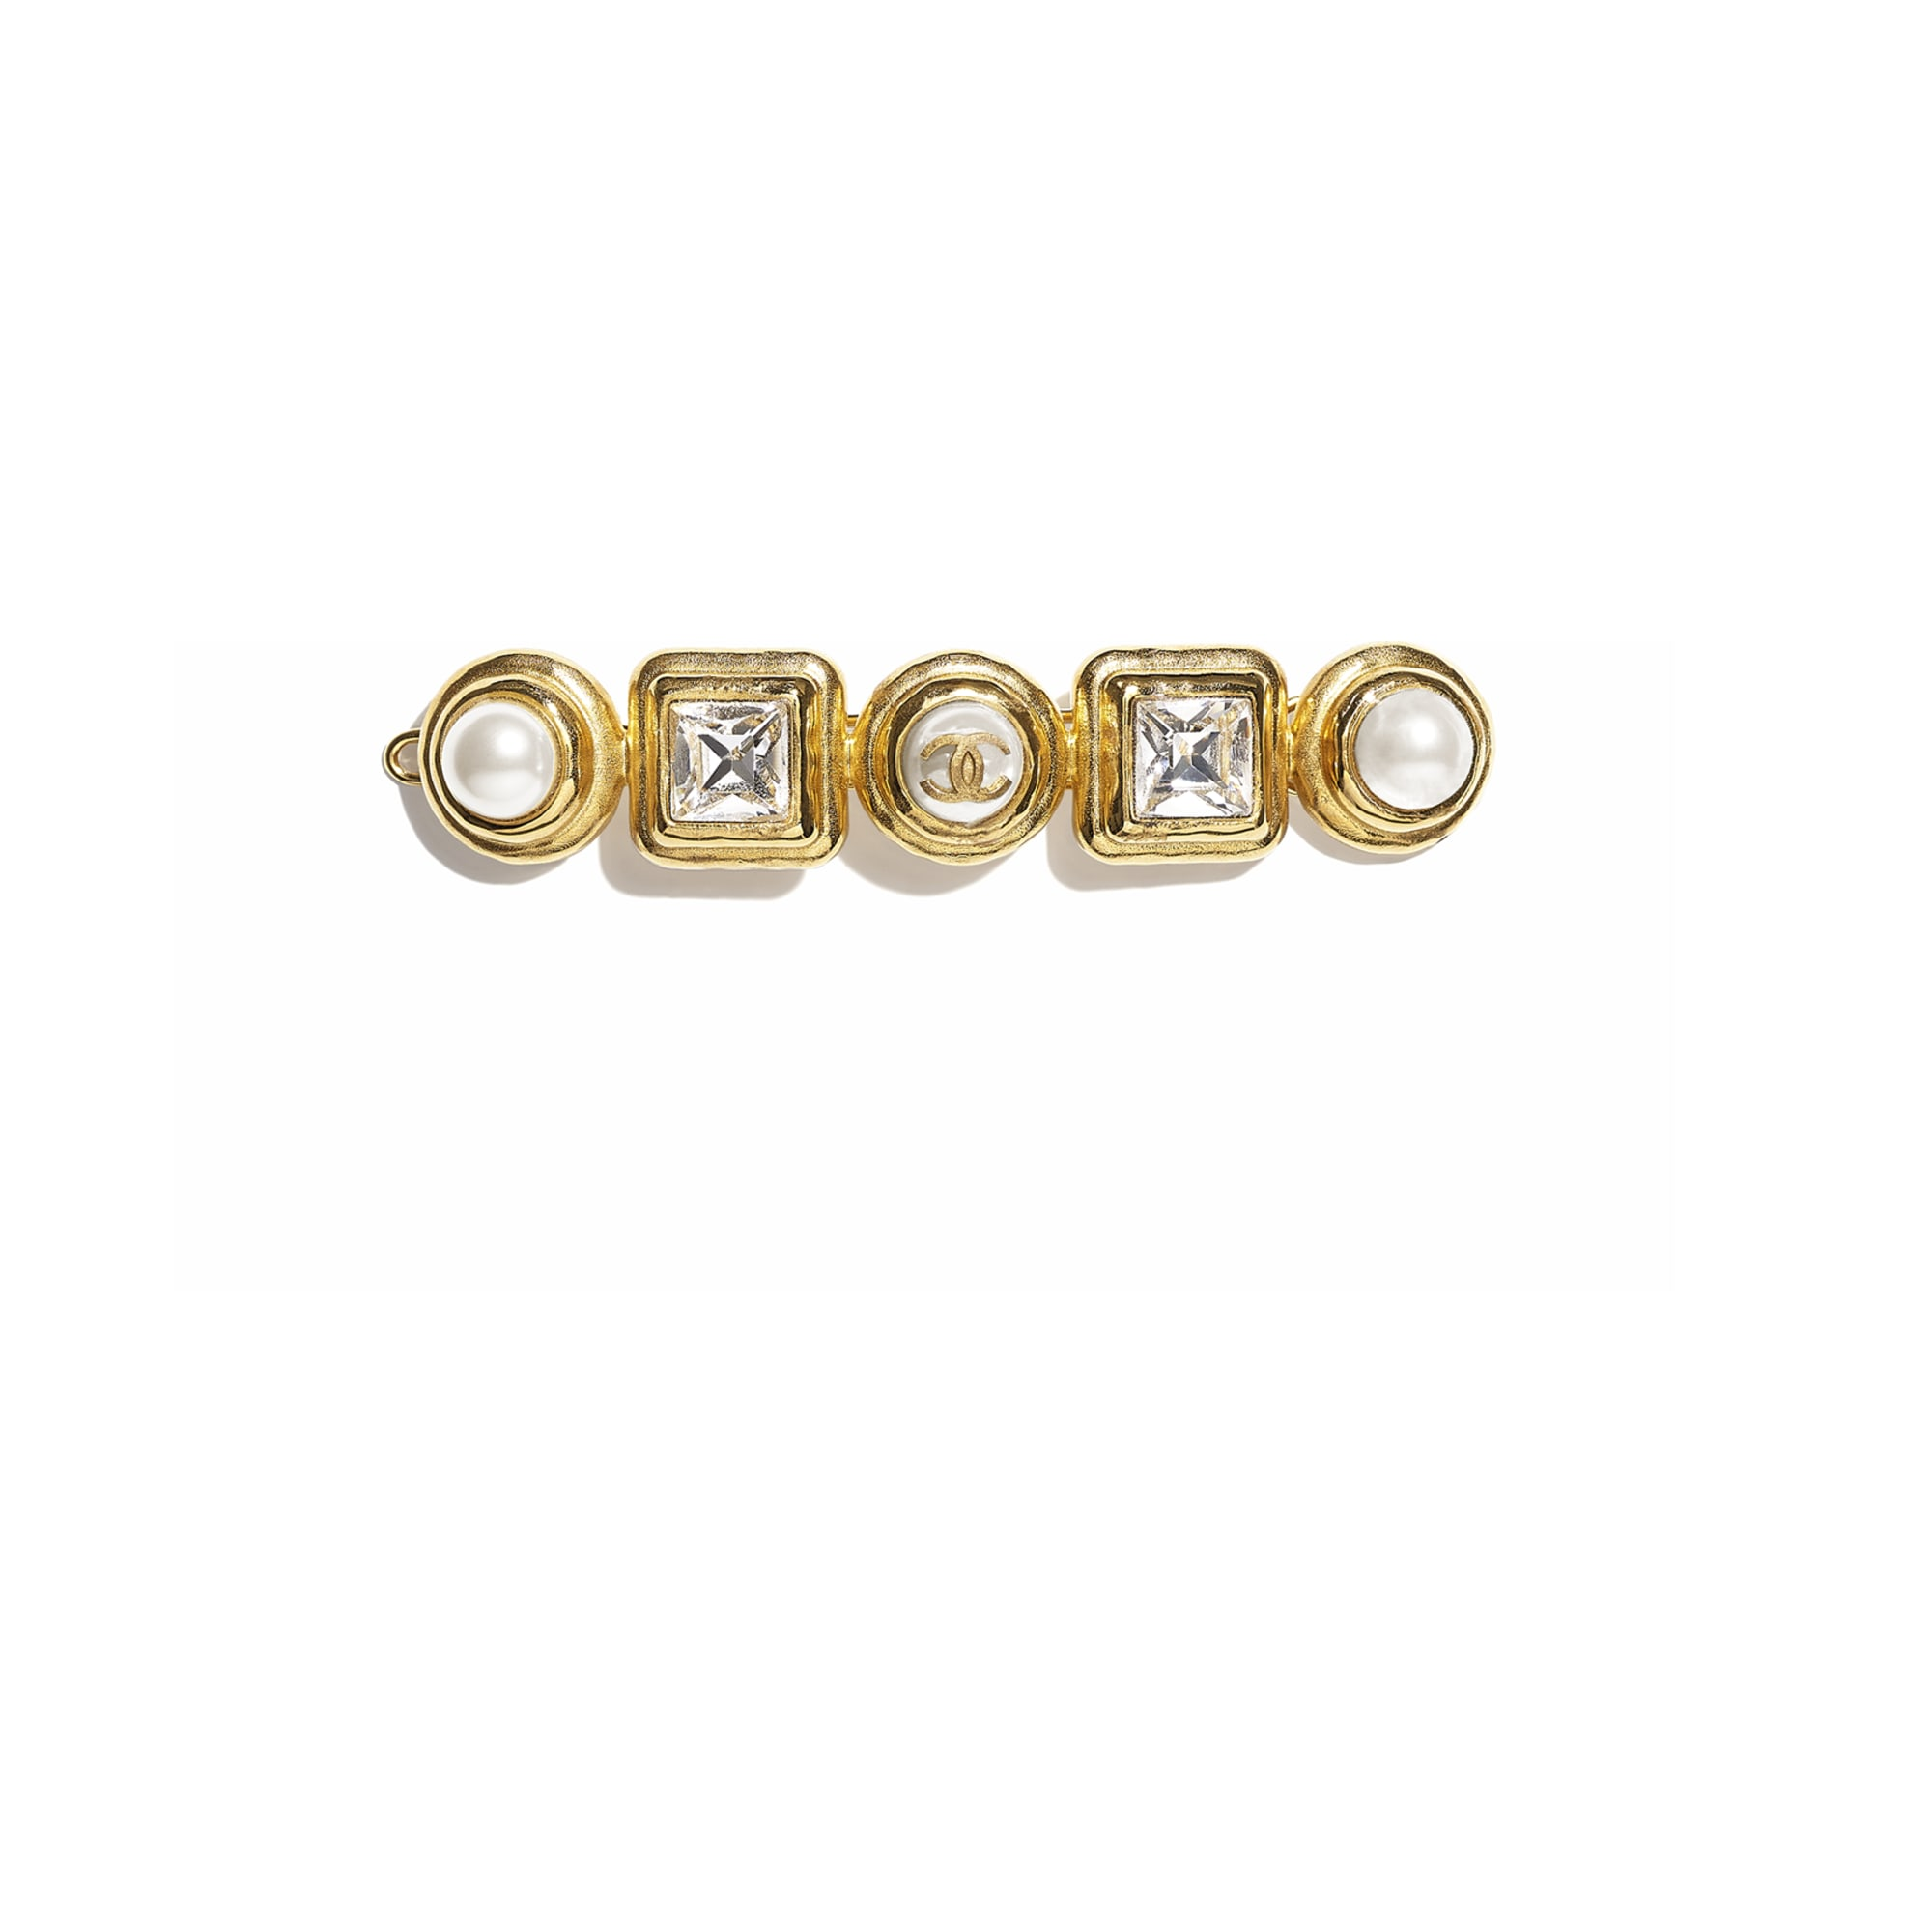 Hair Clip - Gold, Pearly White & Crystal - Metal, Glass Pearls & Diamantés - CHANEL - Default view - see standard sized version